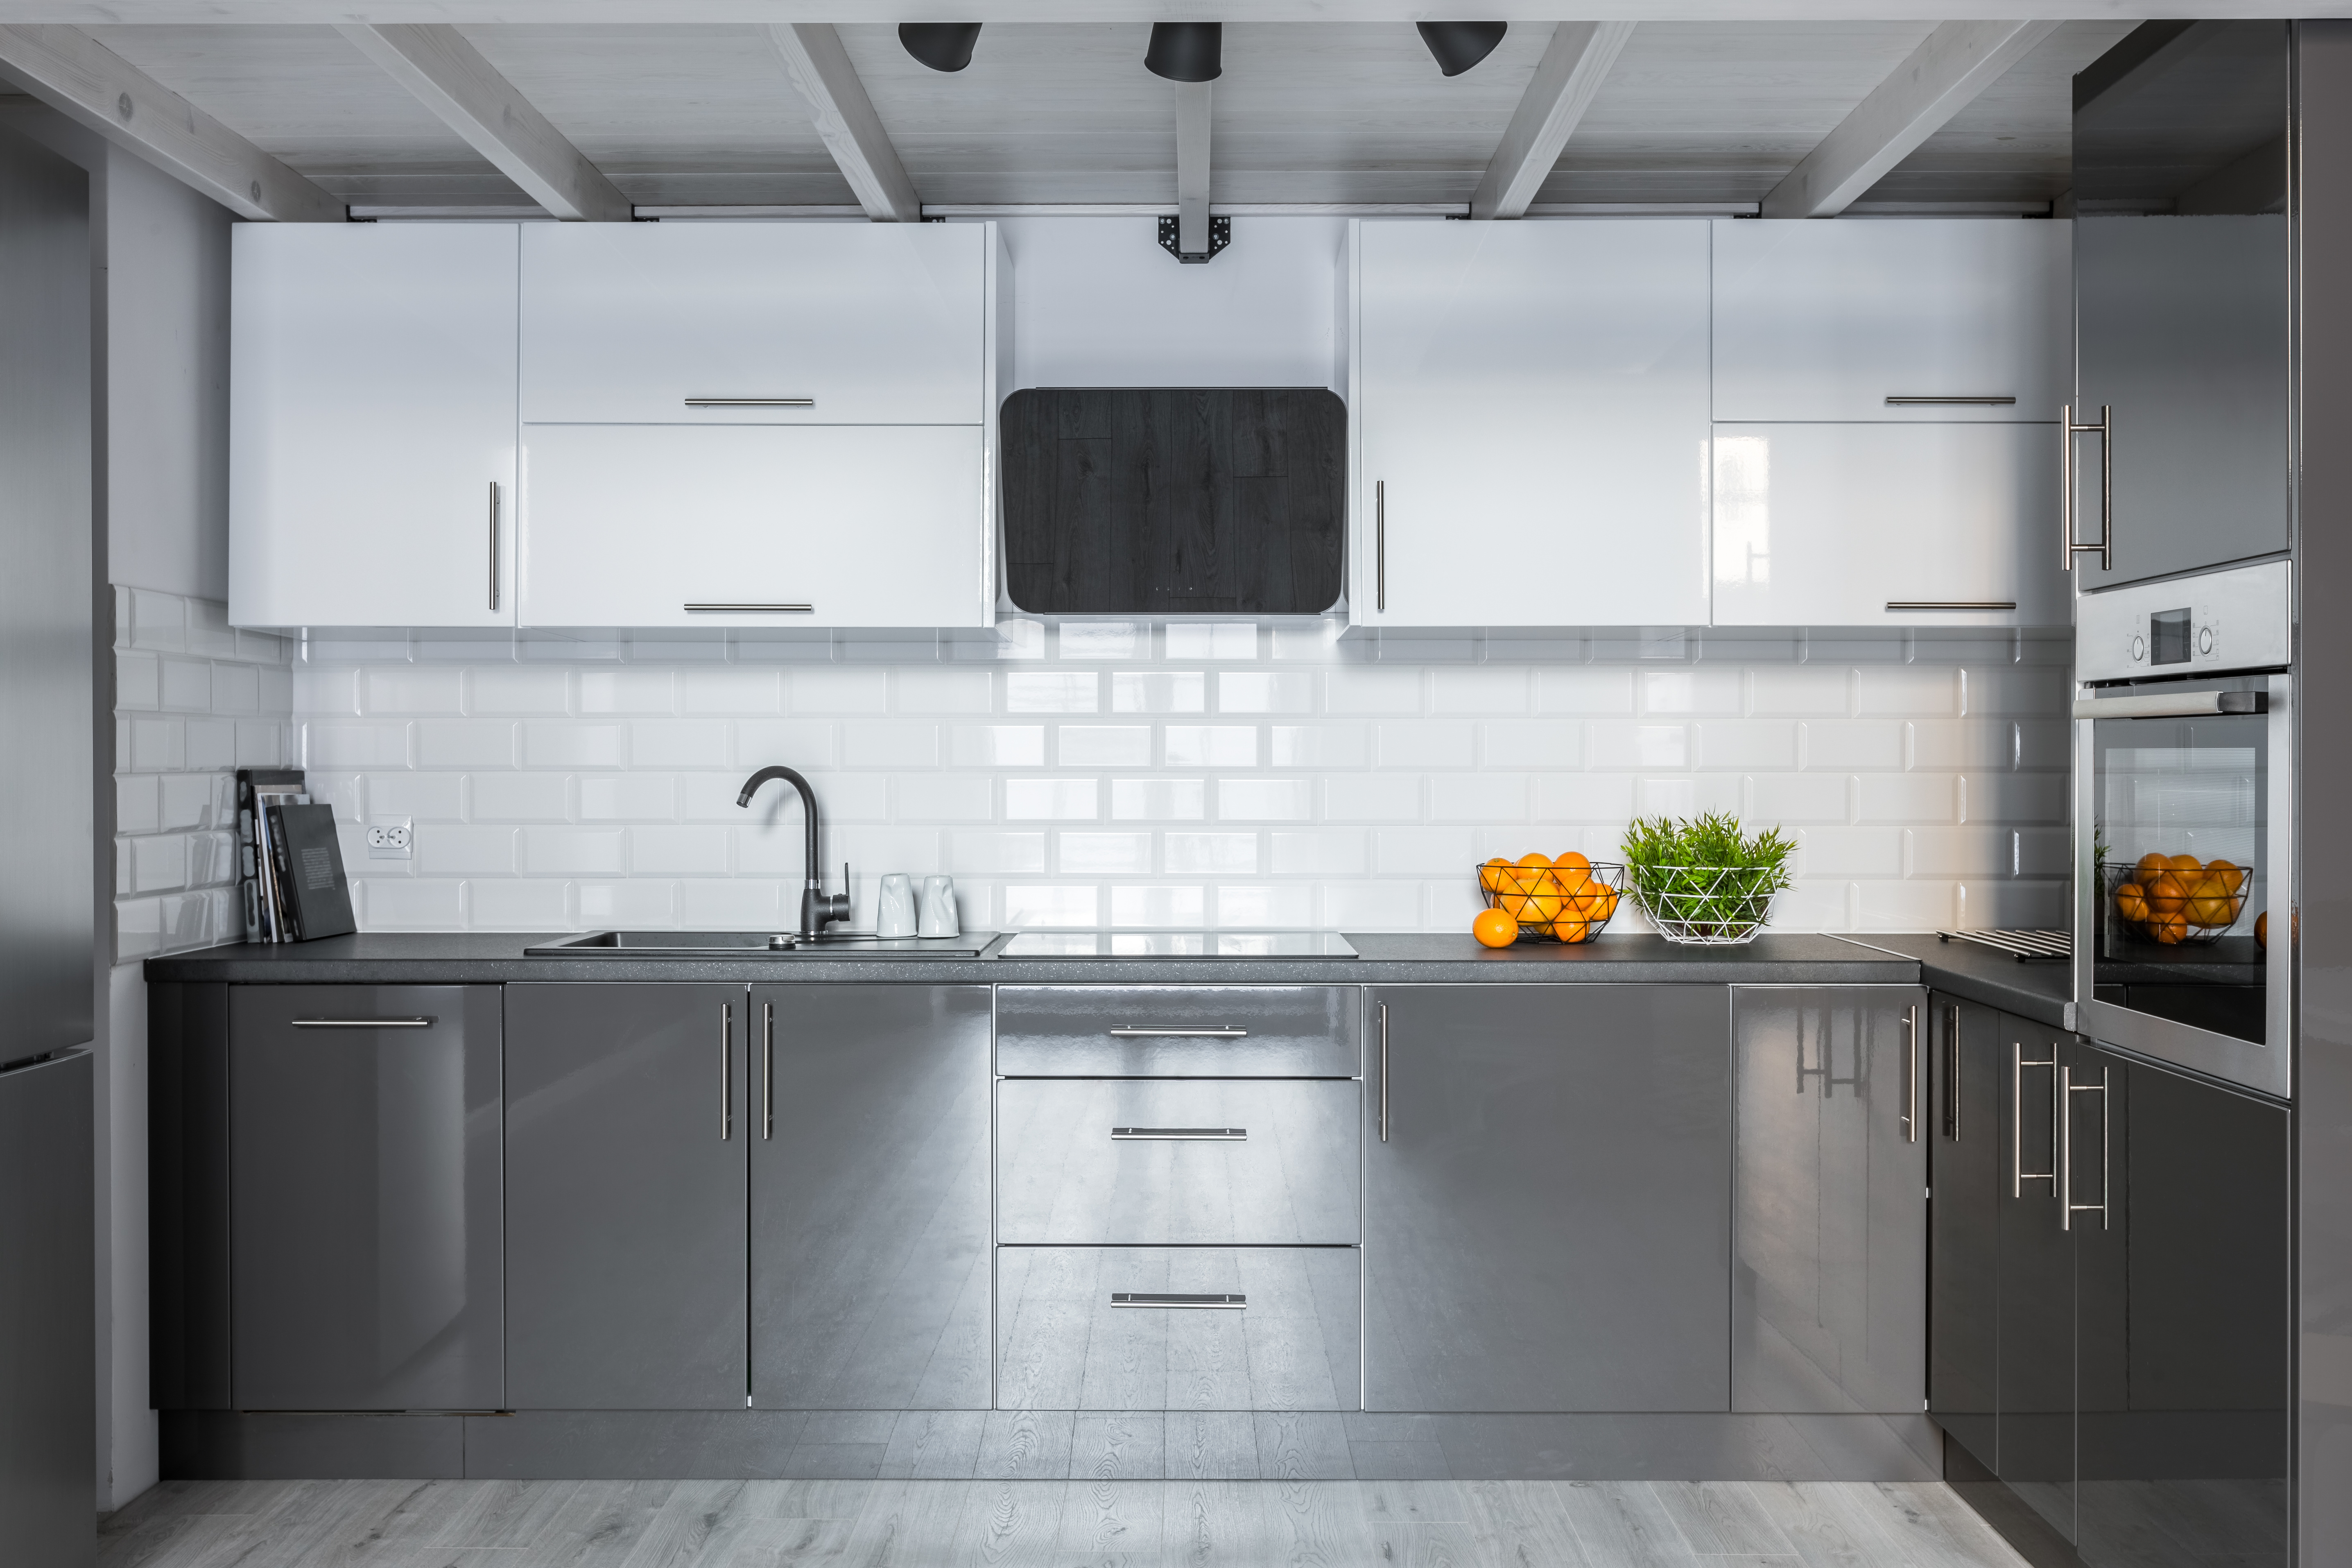 Sick of seeing subway tile? Here are alternatives